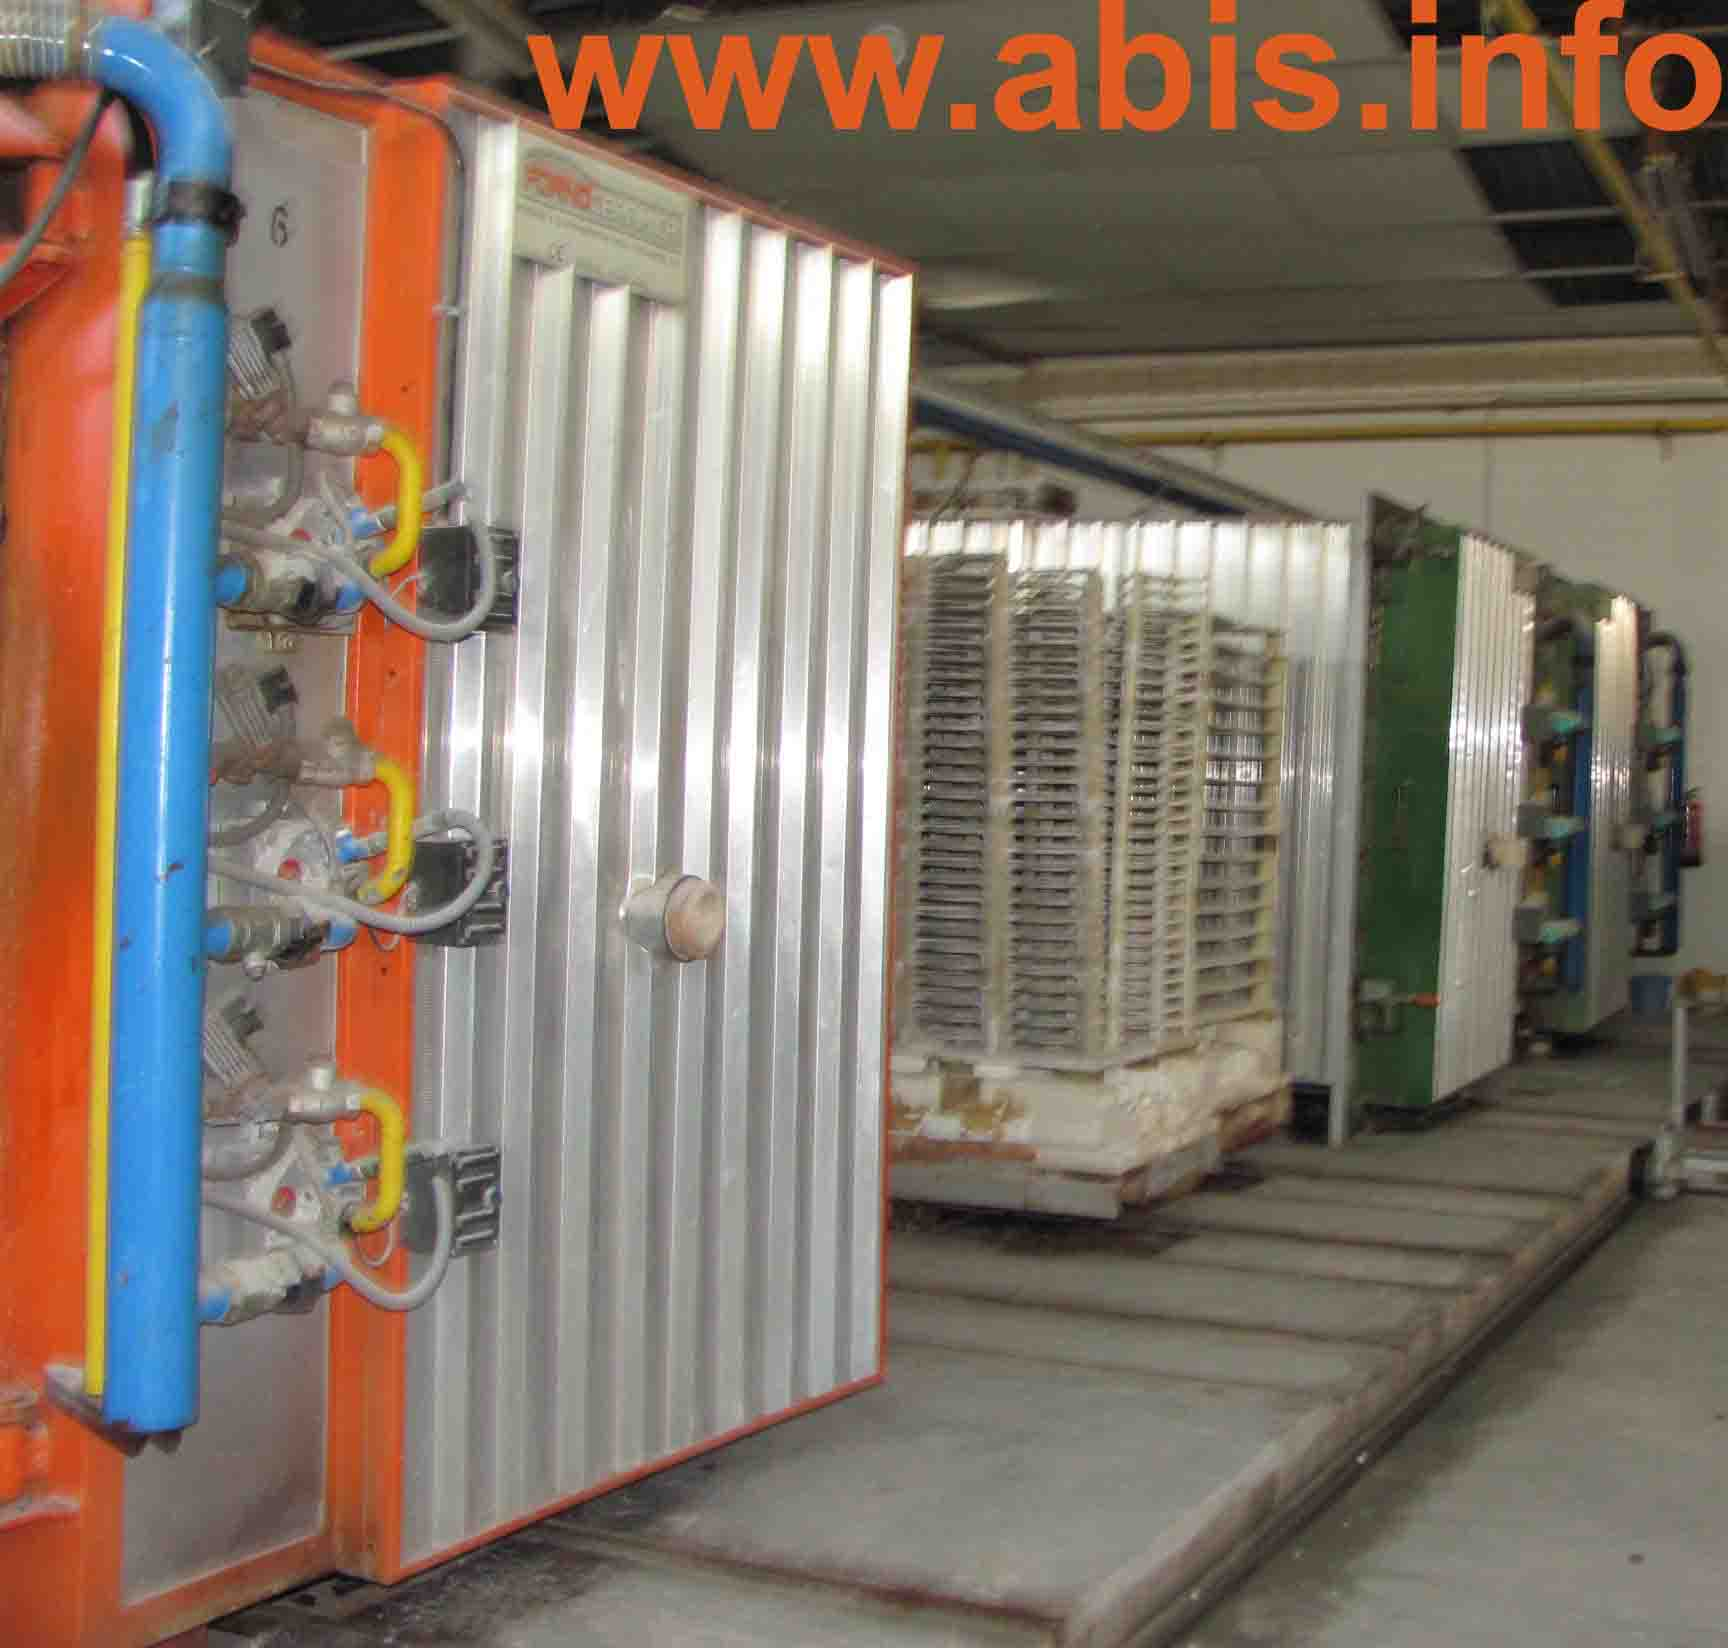 ABIS GmbH - MACHINES & SERVICE (NEW / USED) - Öfen (Kilns ...